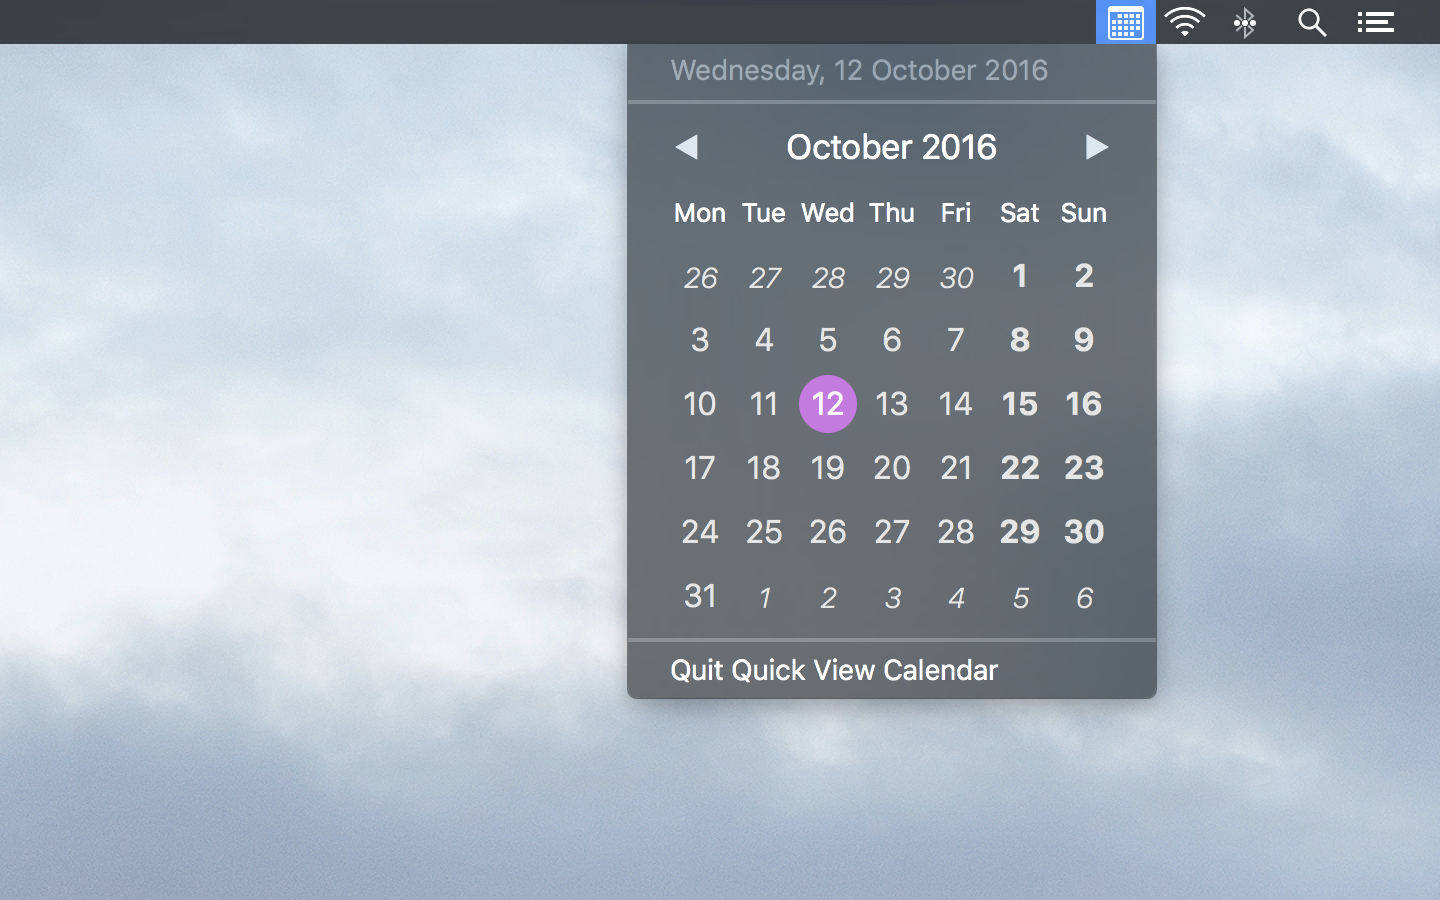 Quick View Calendar adapts to dark menu bar mode